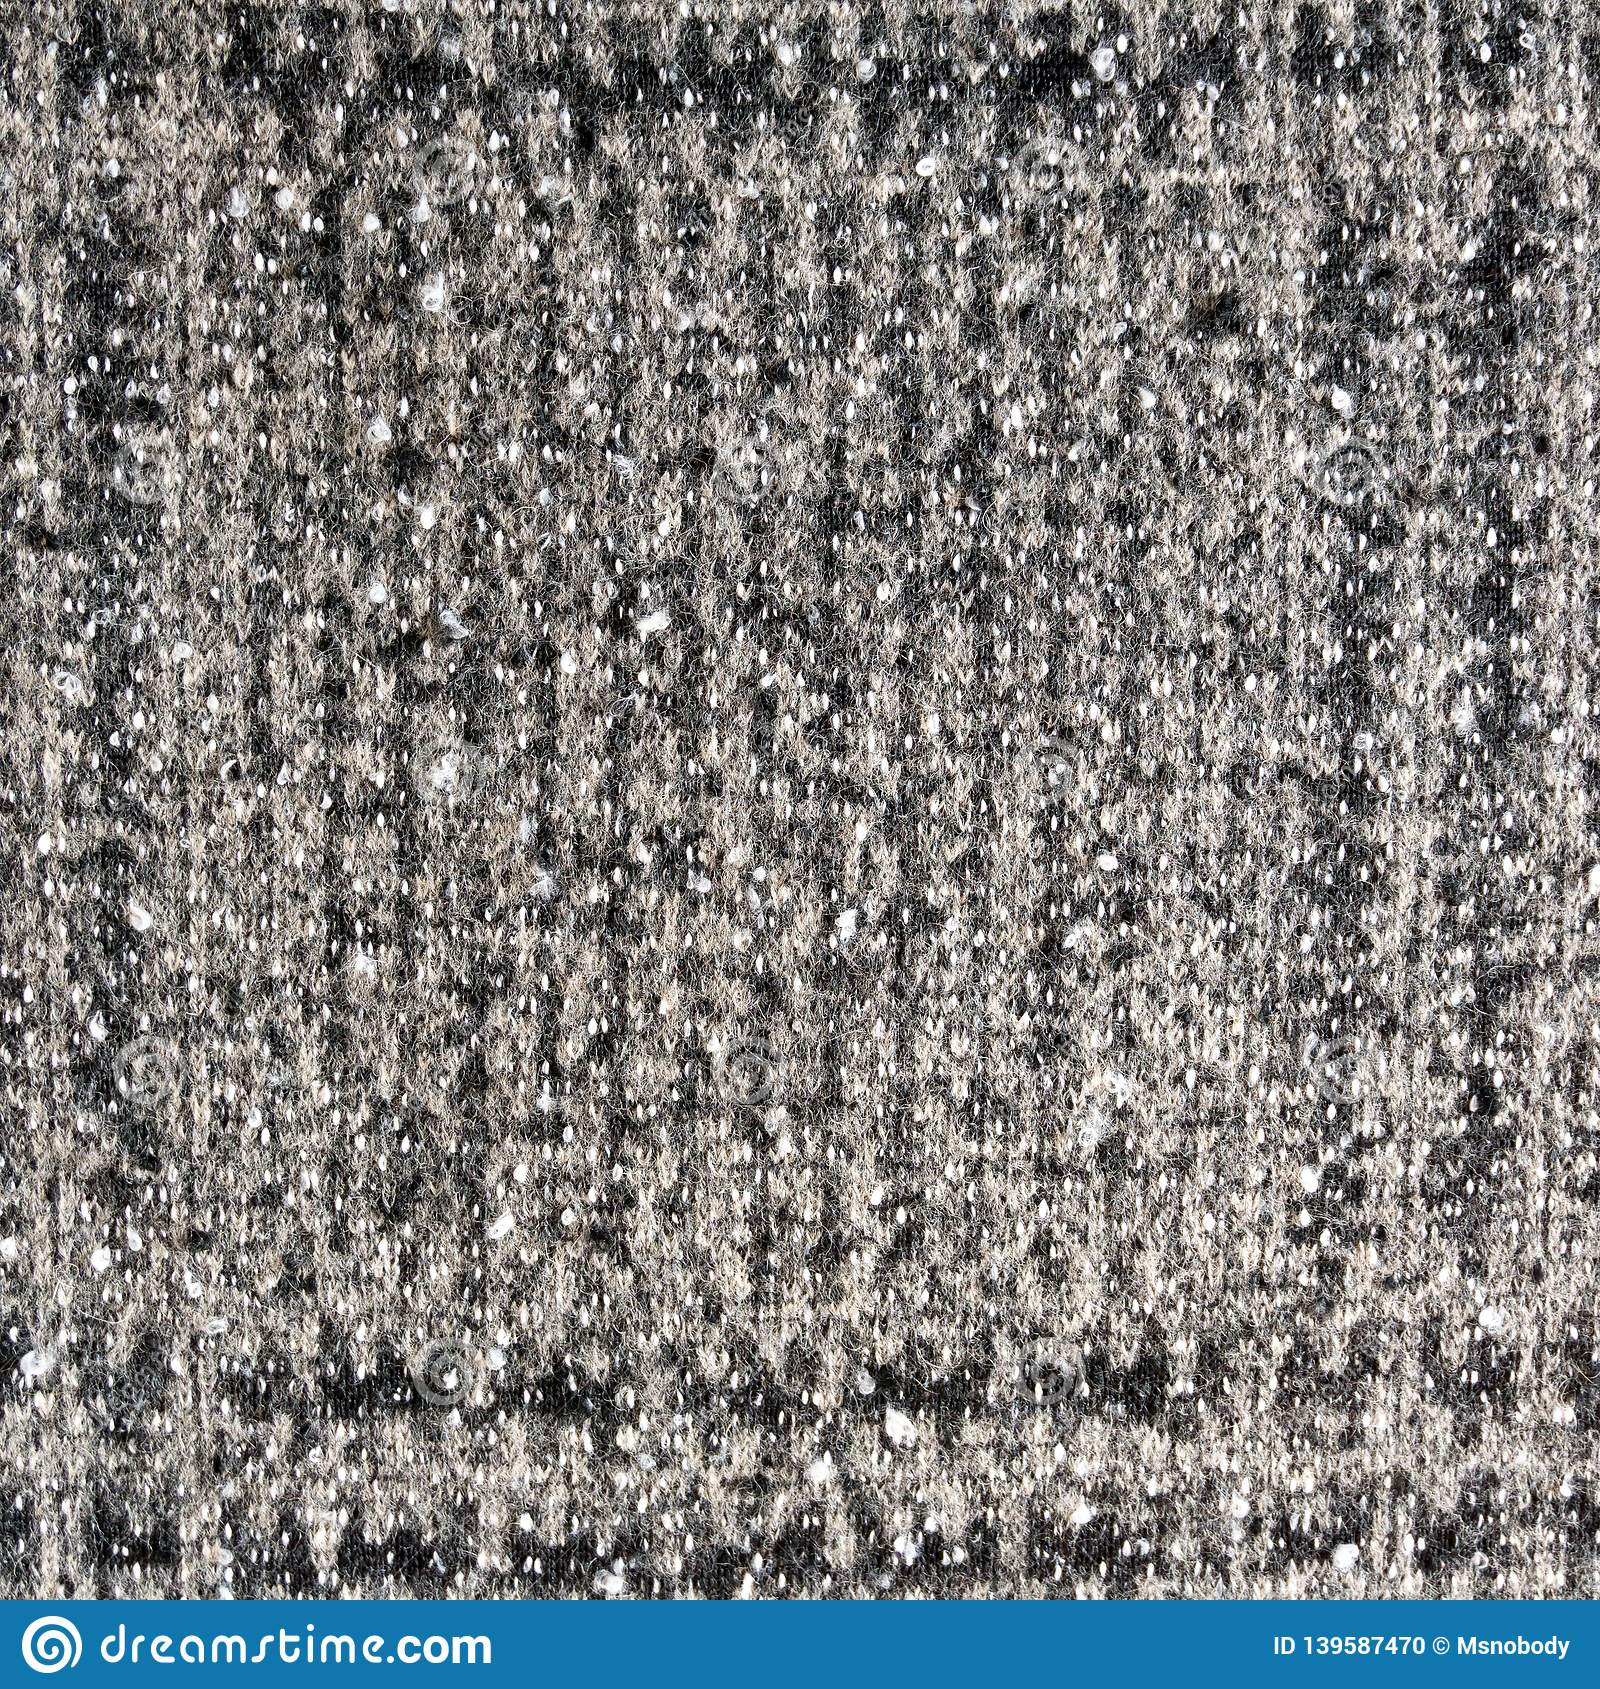 a227984d2a8caf Heather Knitted Fabric Made Of Wool Fibres Textured Background ...